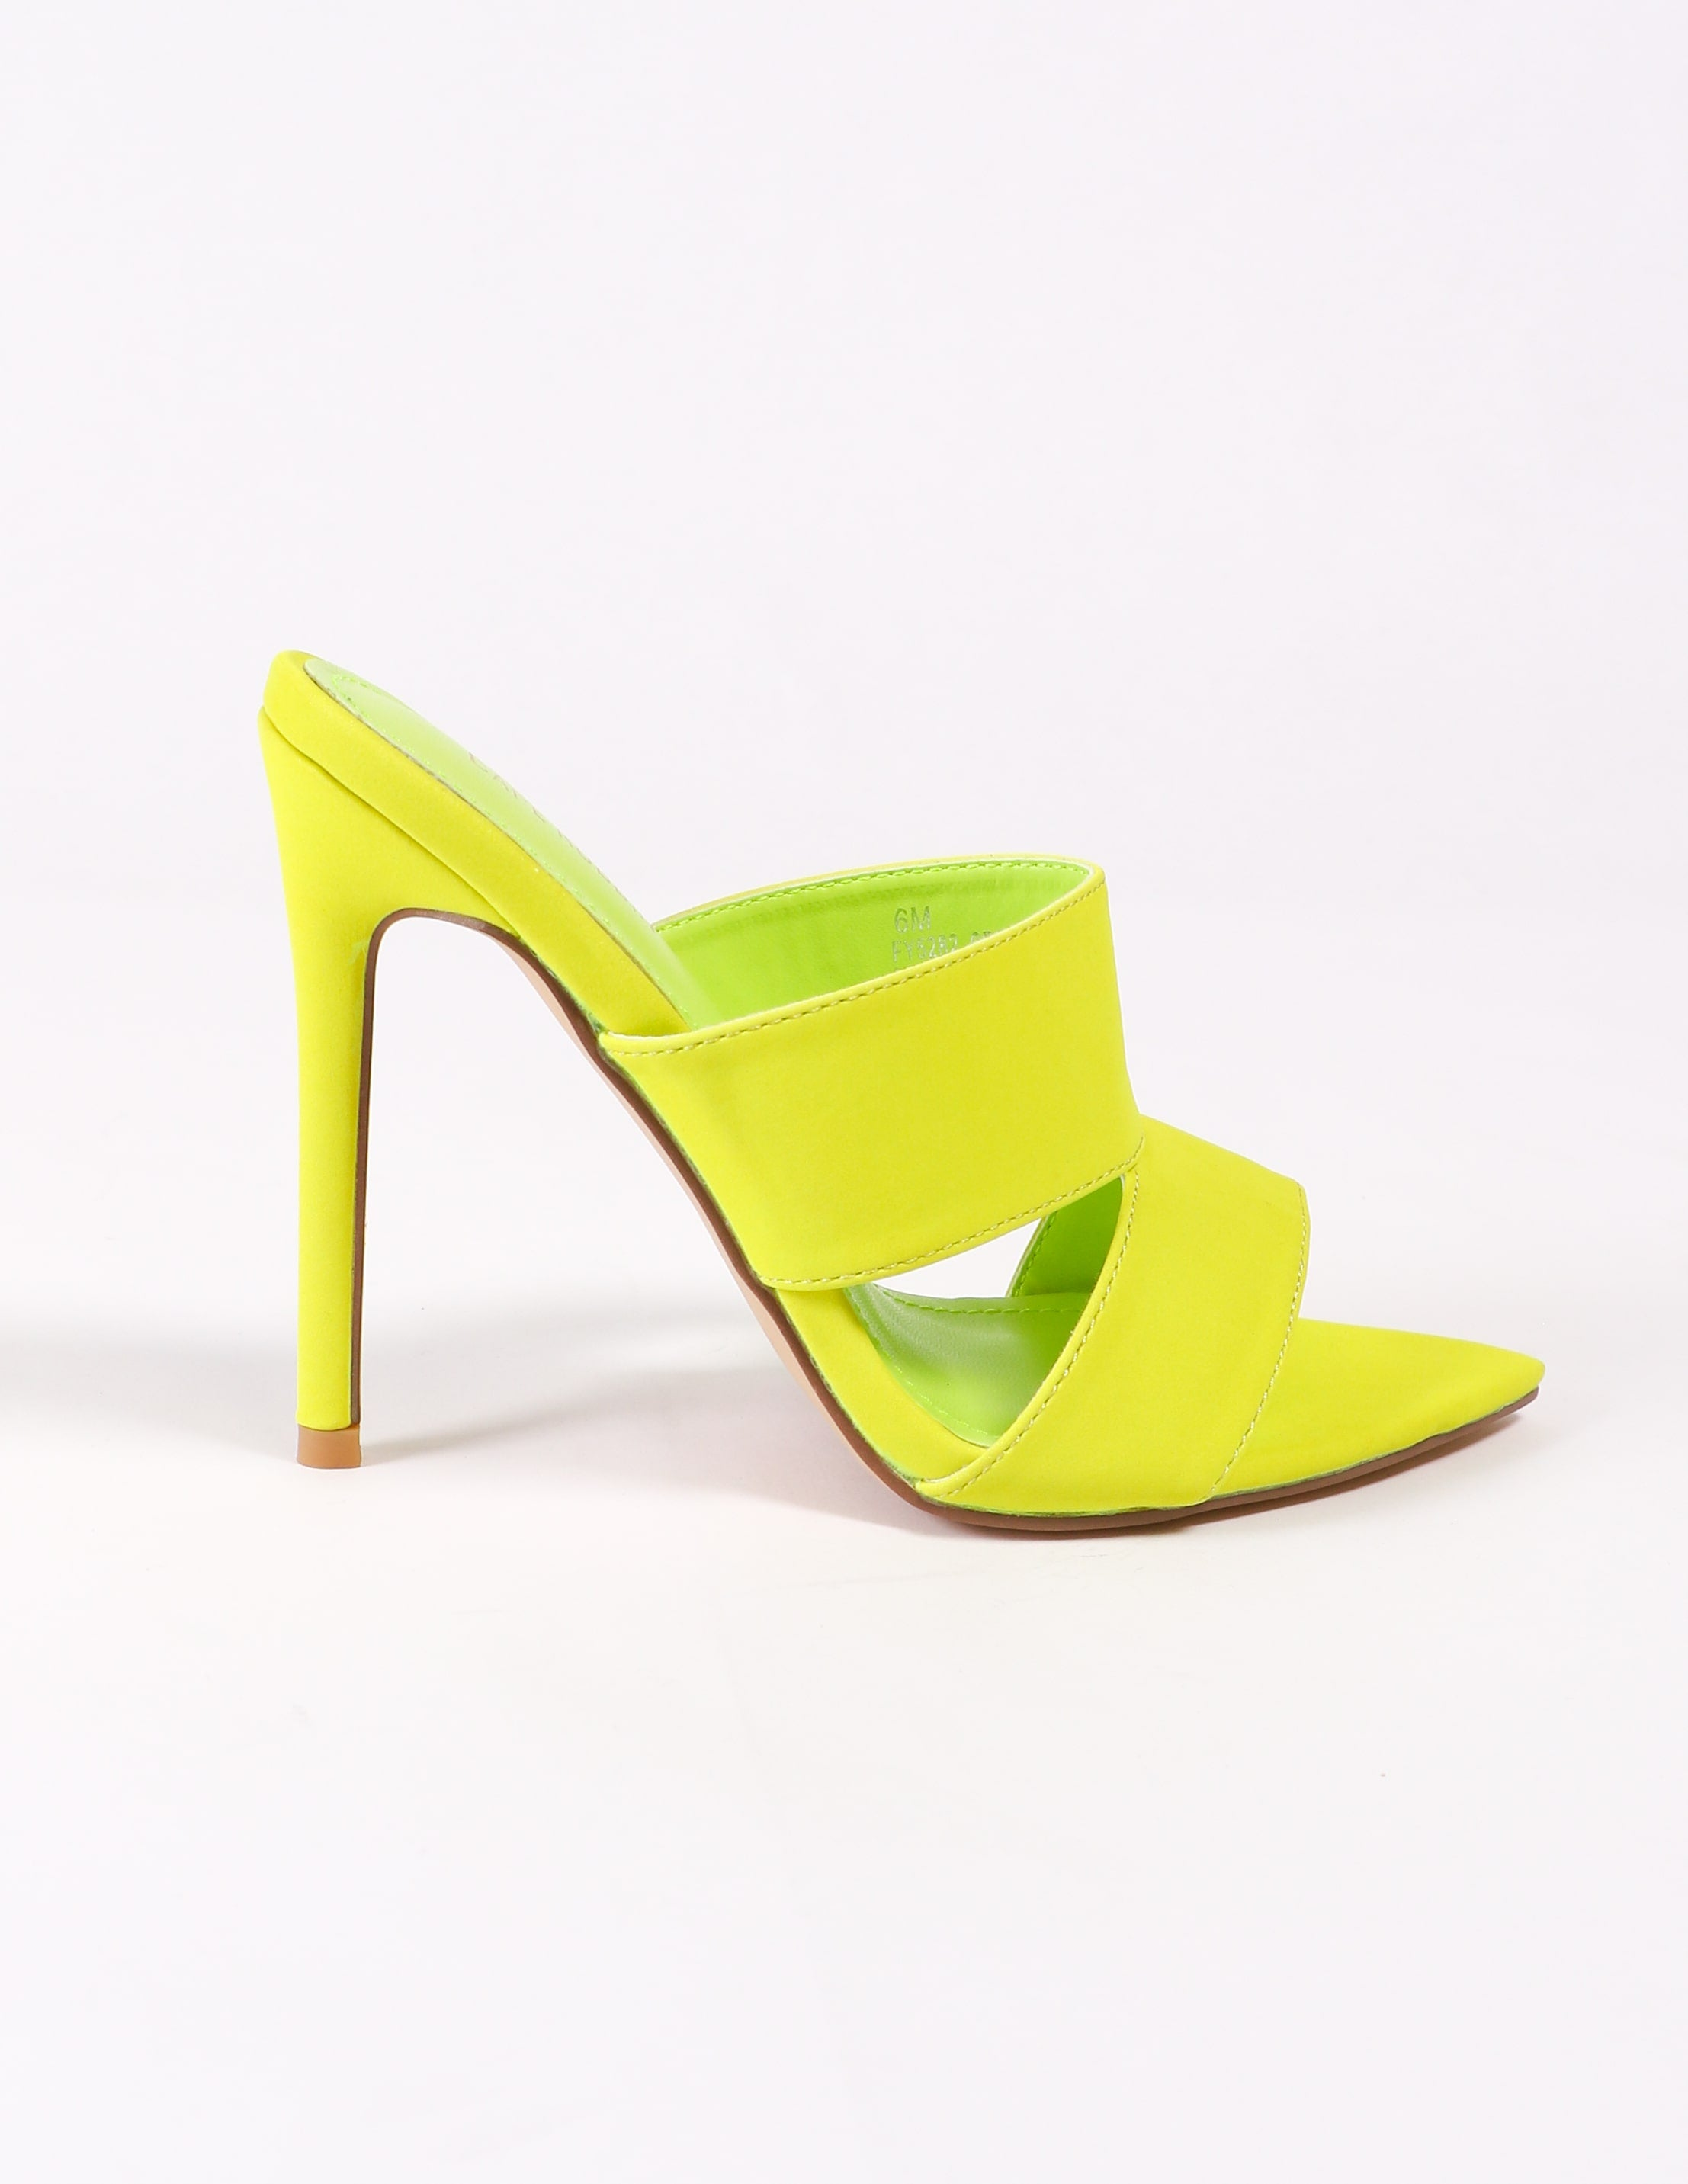 side of the lime green highlight stiletto heel on white background